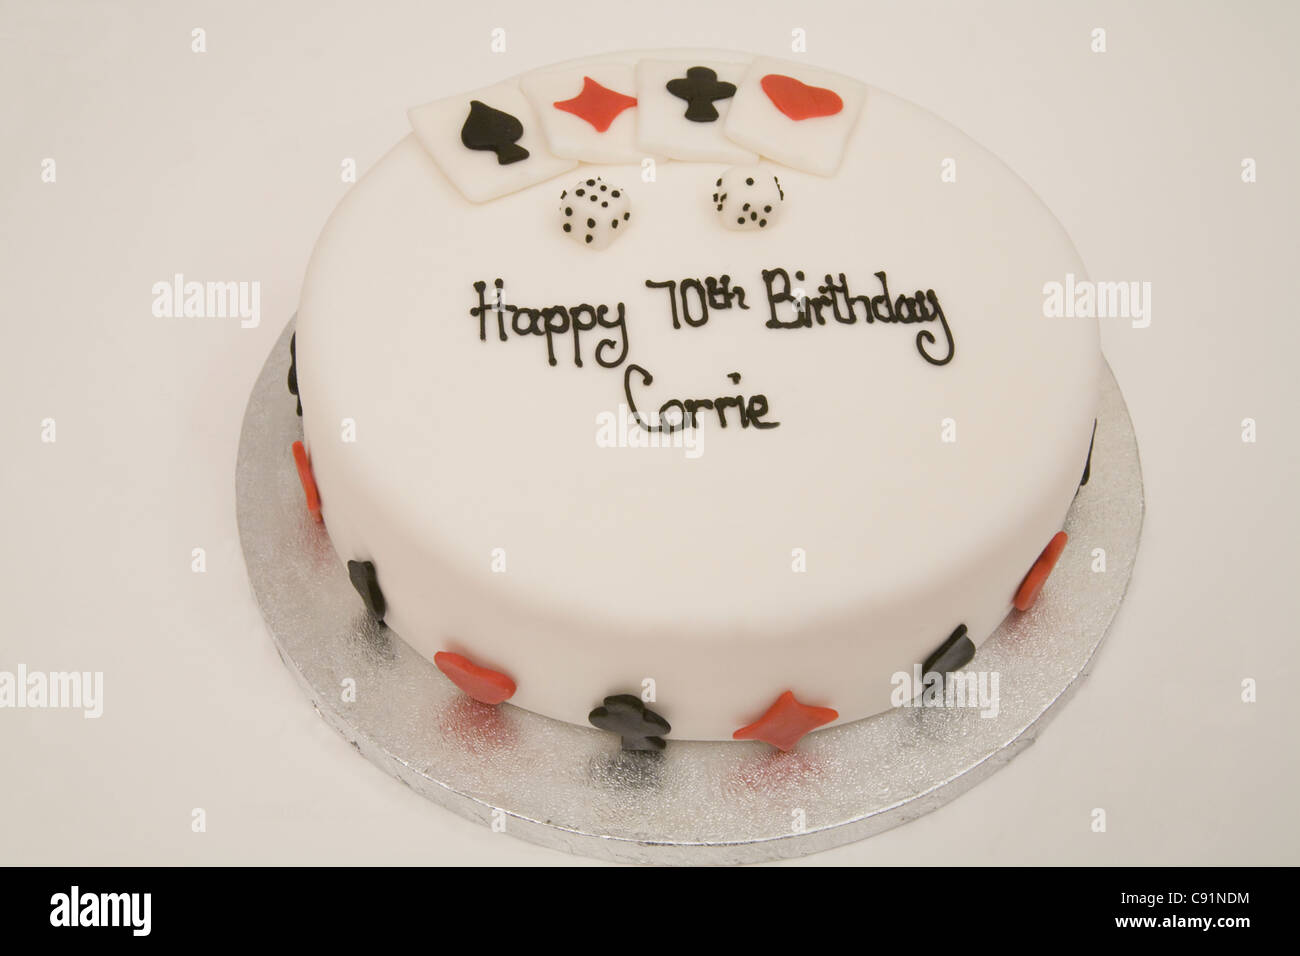 Iced 70th birthday cake decorated with playing cards and for 70th birthday cake decoration ideas